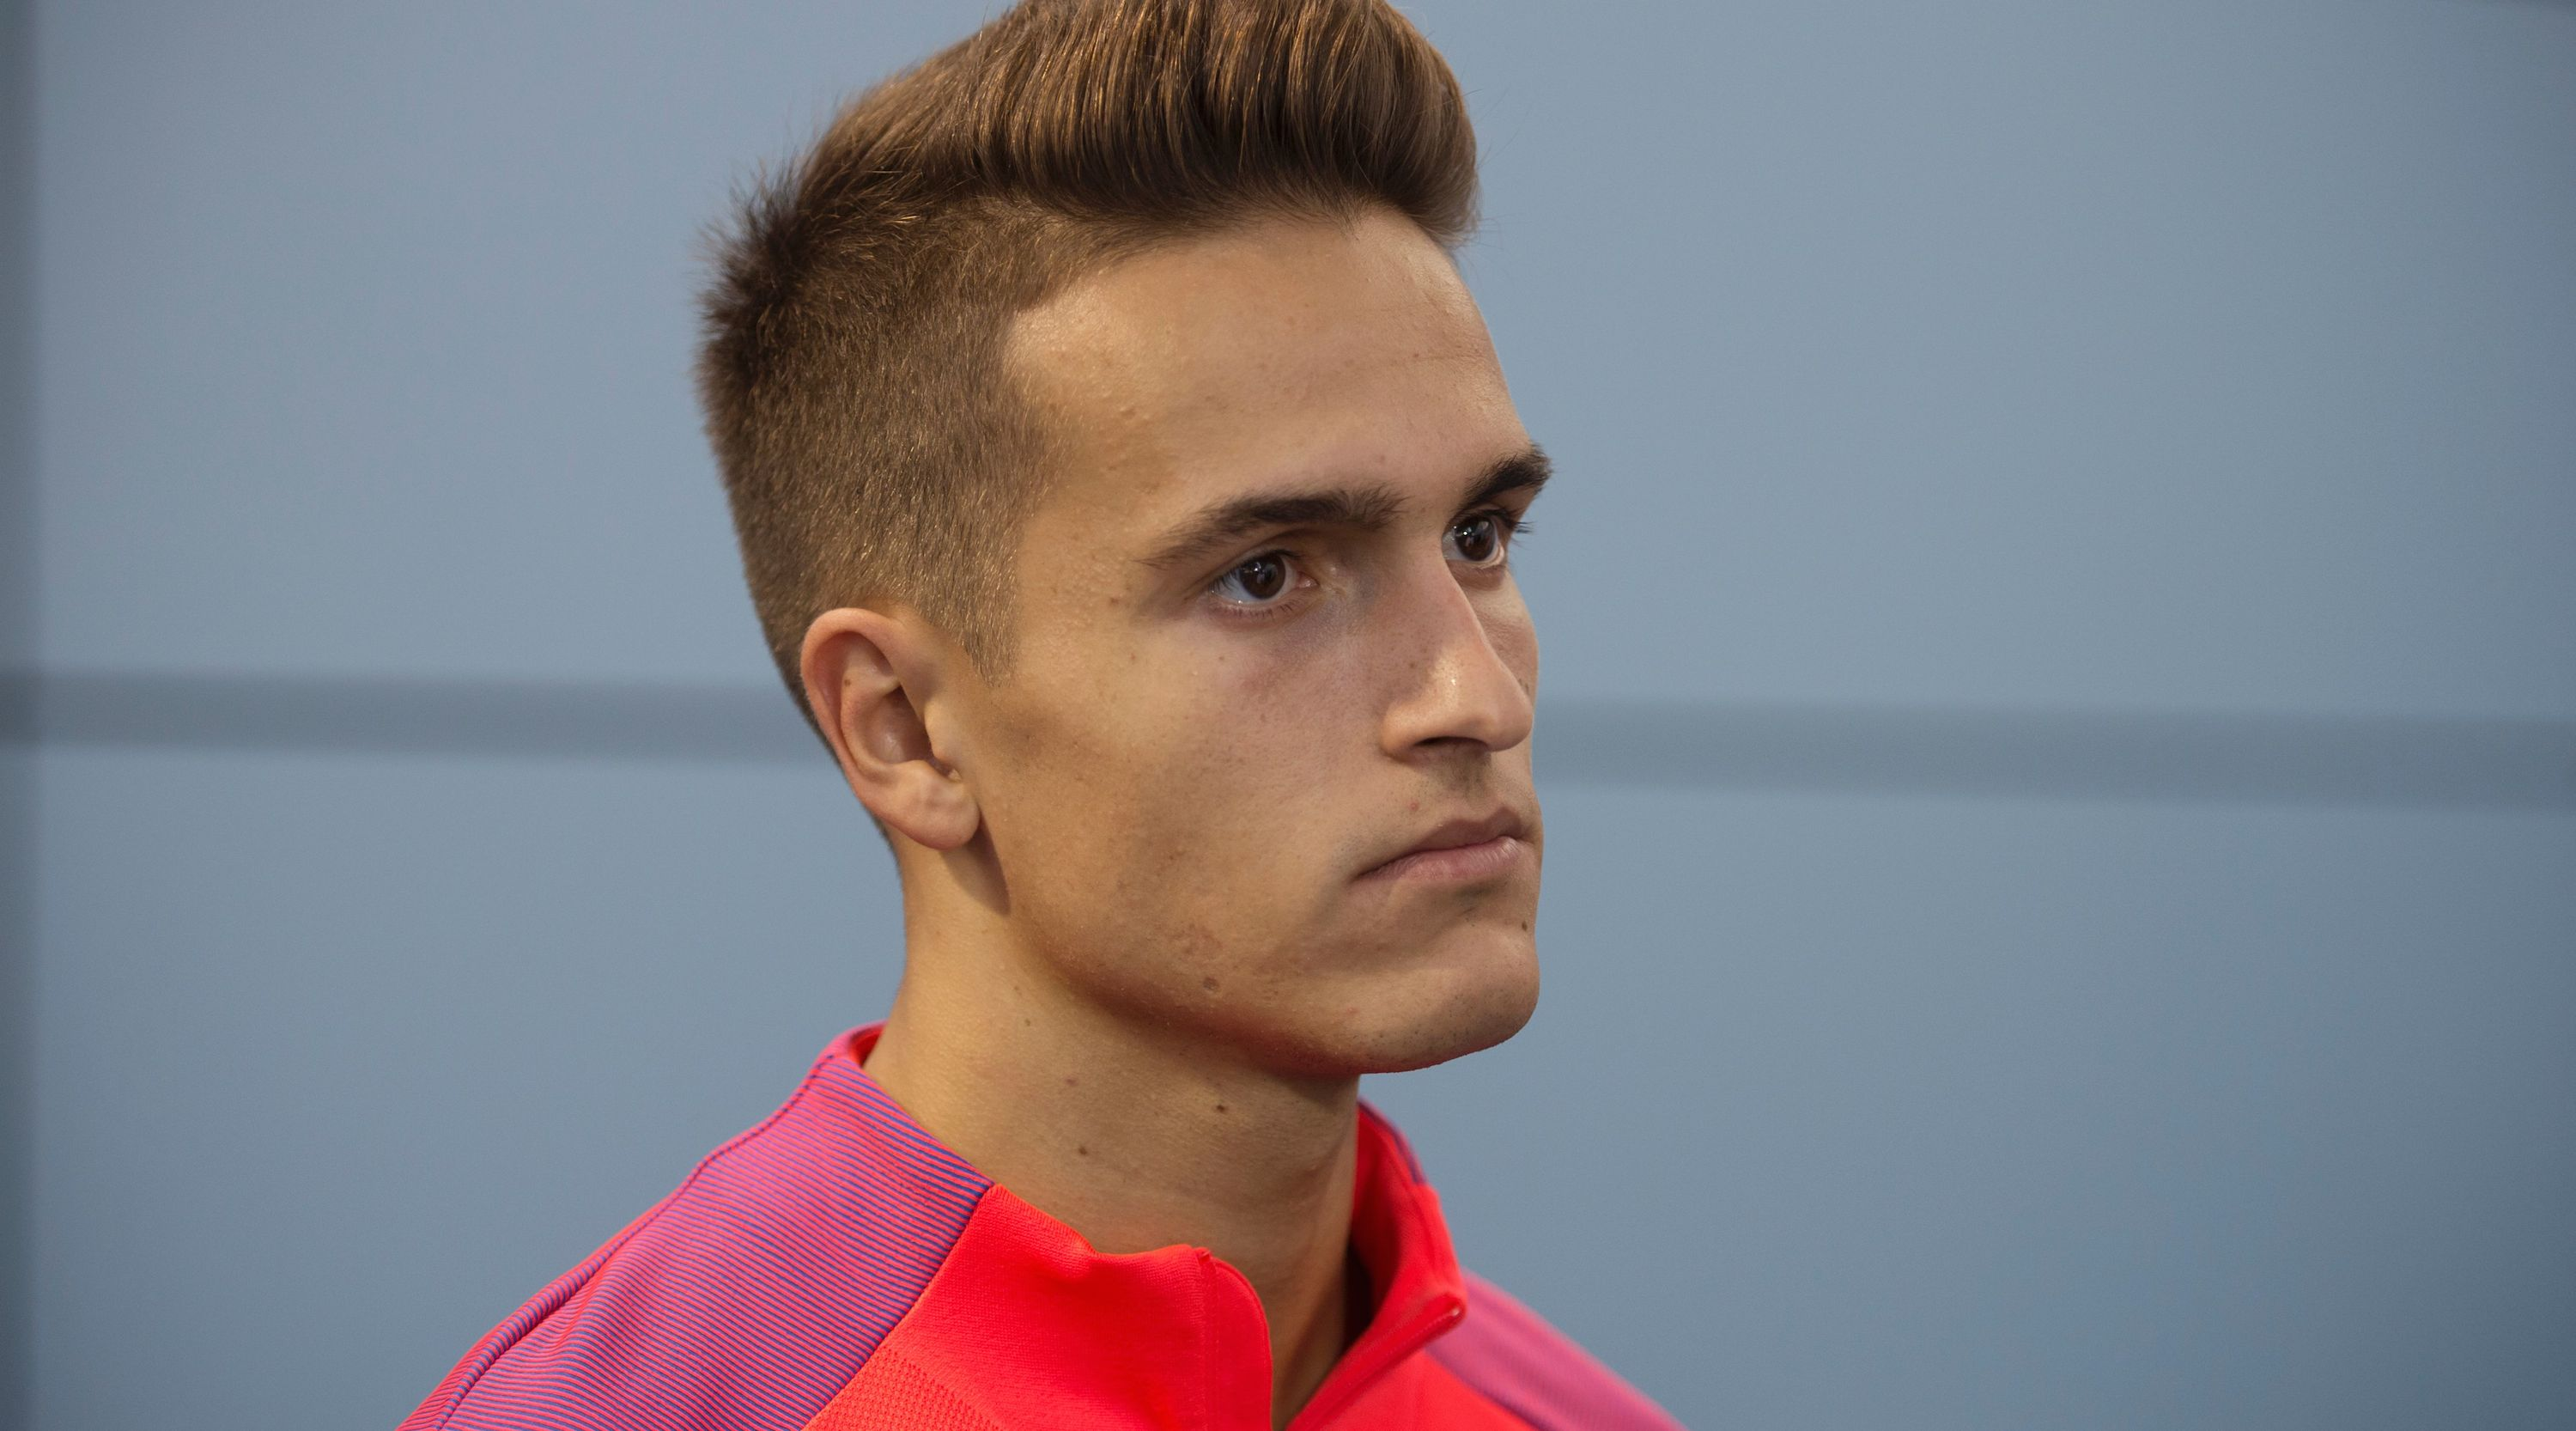 Barcelona's Spanish midfielder Denis Suarez speaks during an interview following a team training session at St George's Park near Burton-on-Trent, central England, on July 26, 2016.